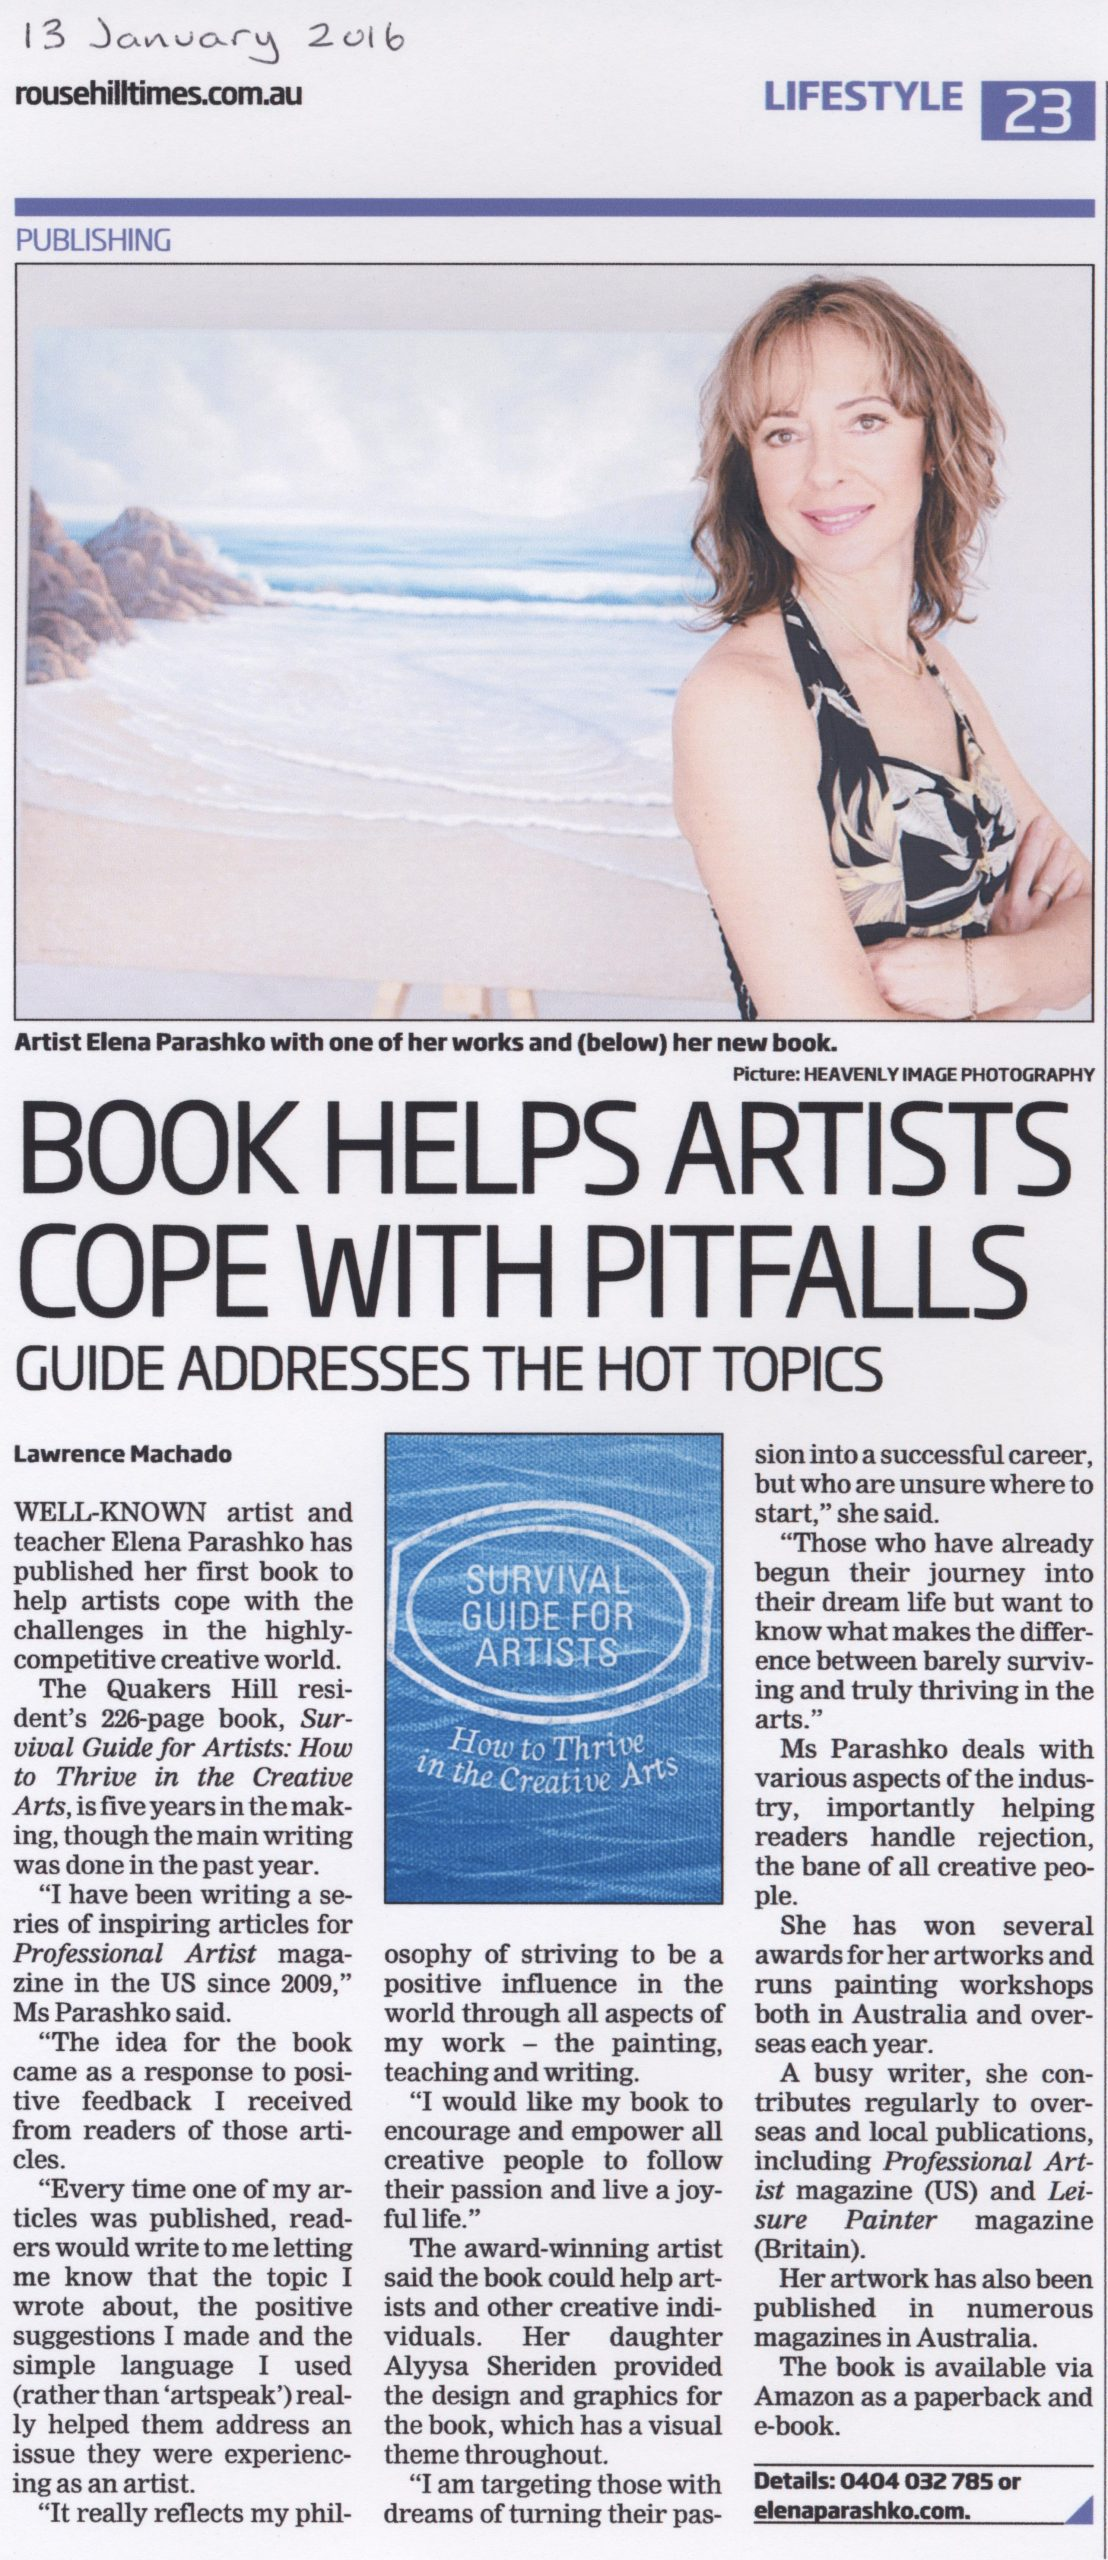 Book Helps Artists Cope